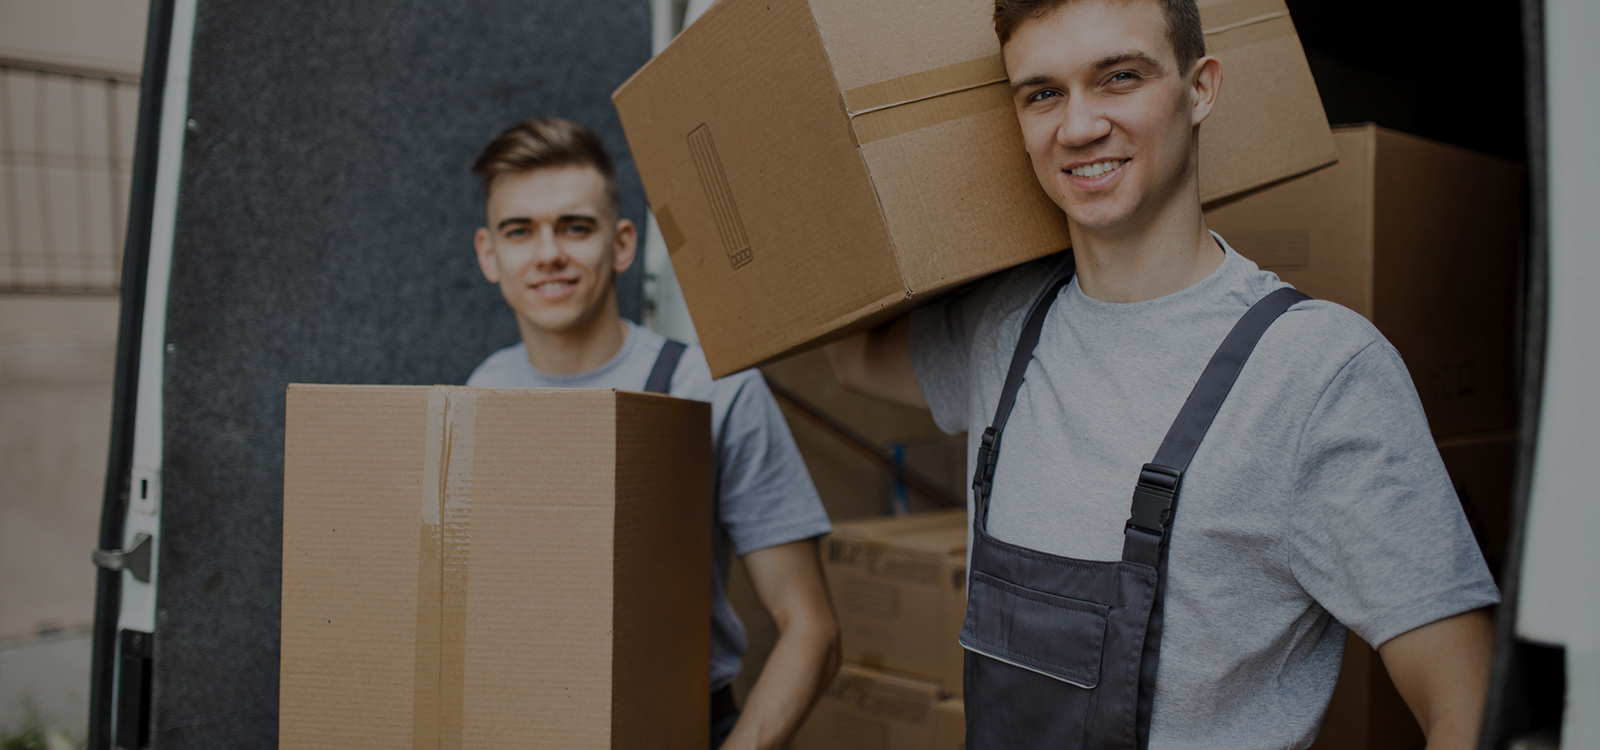 Movers in Dubai Easy Home Movers